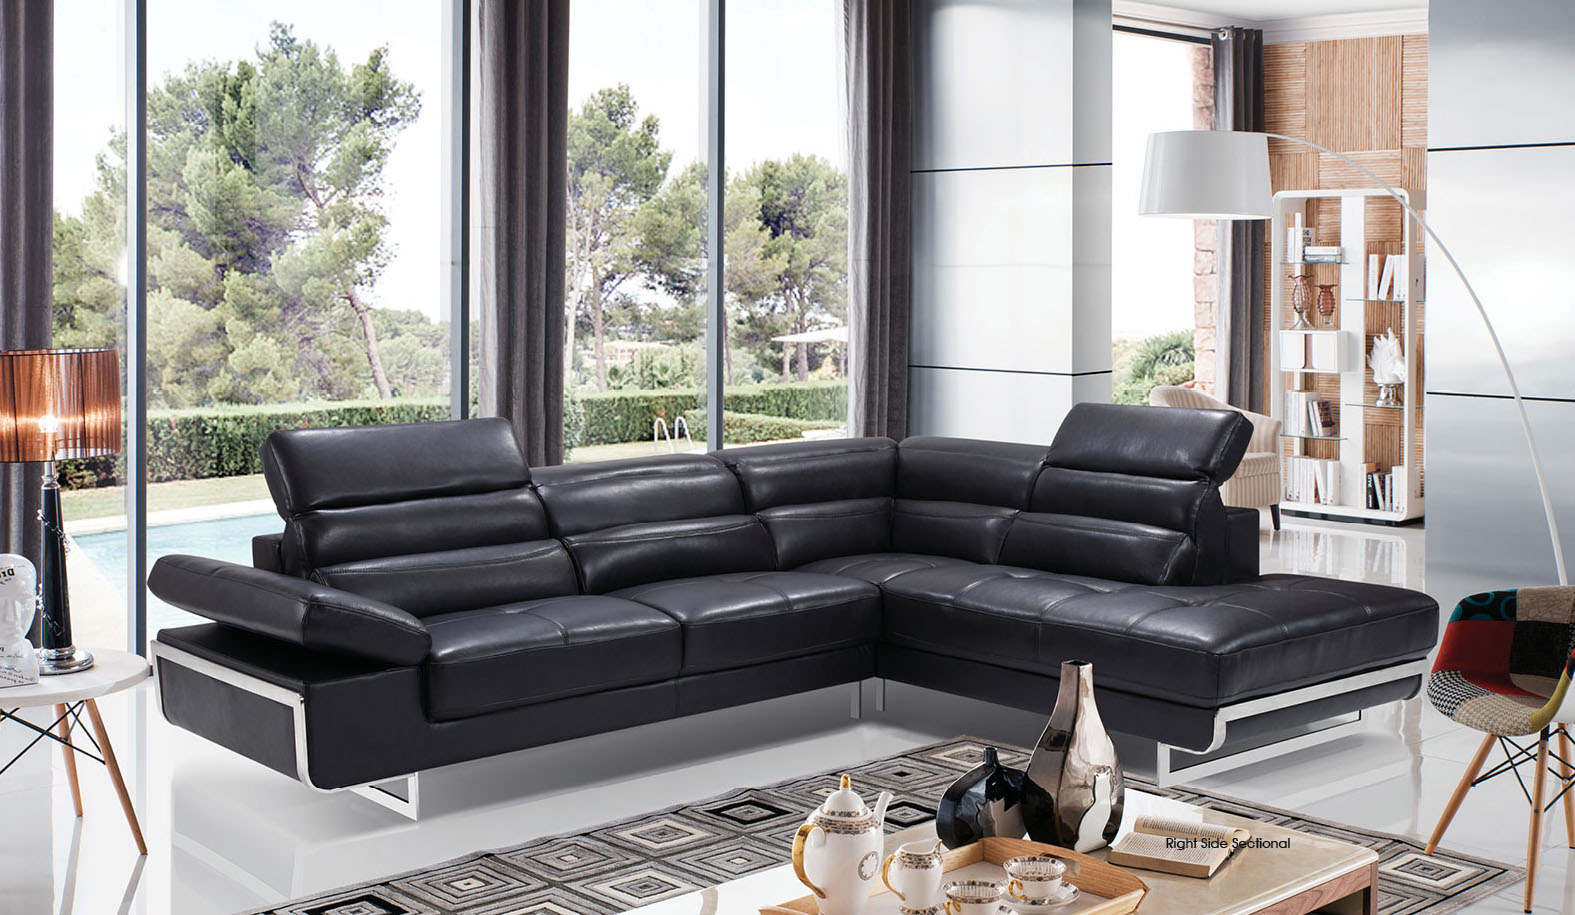 High Class Italian Leather Living Room Furniture